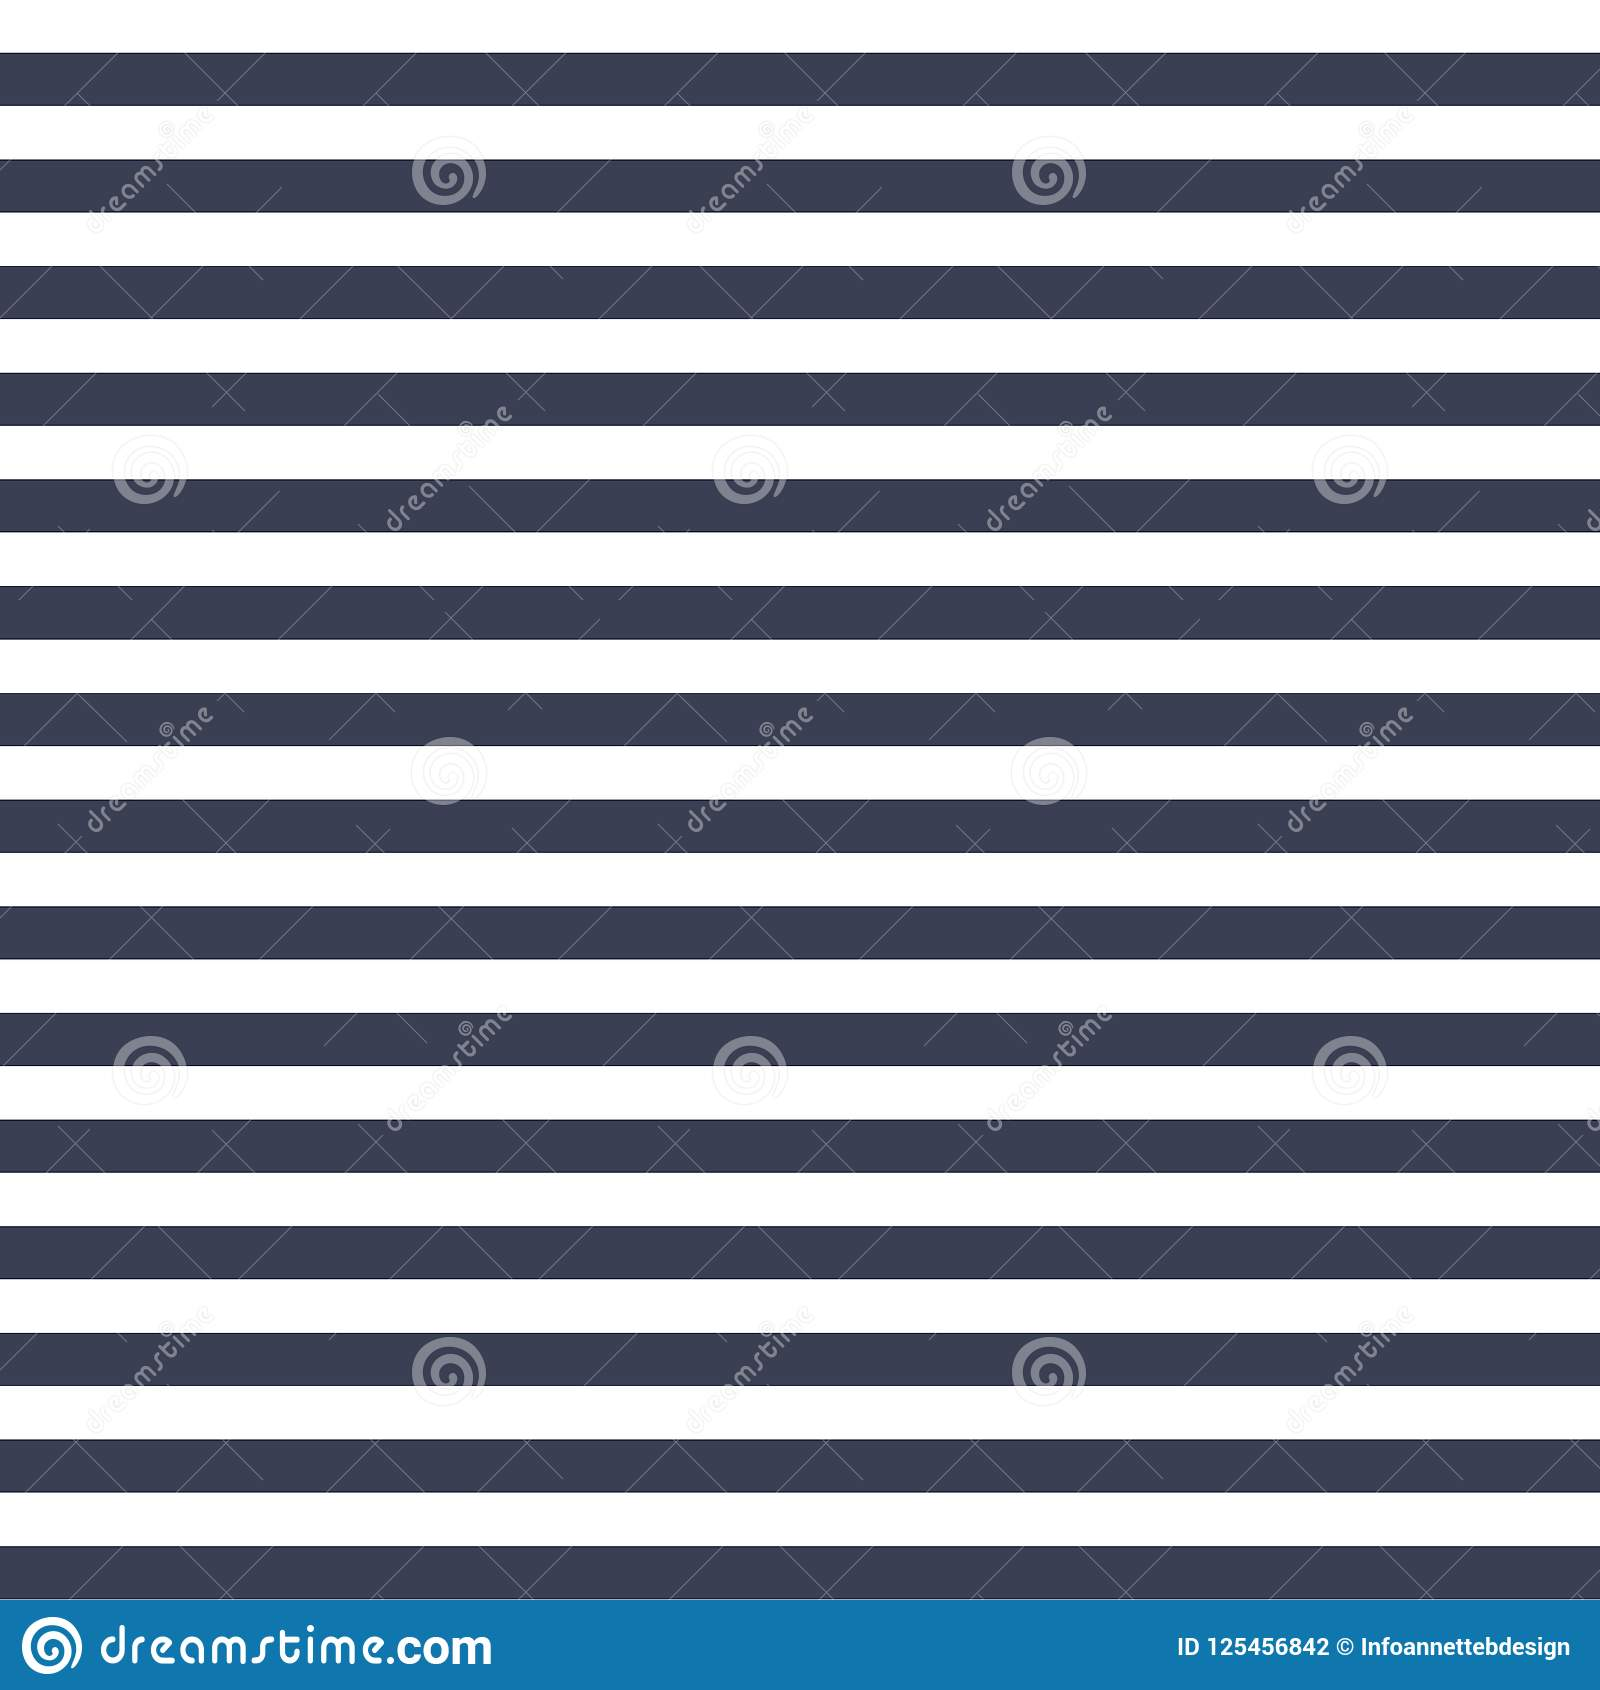 7c68aef32d1 Seamless vector simple stripe pattern with navy and white horizontal  parallel stripes background texture.